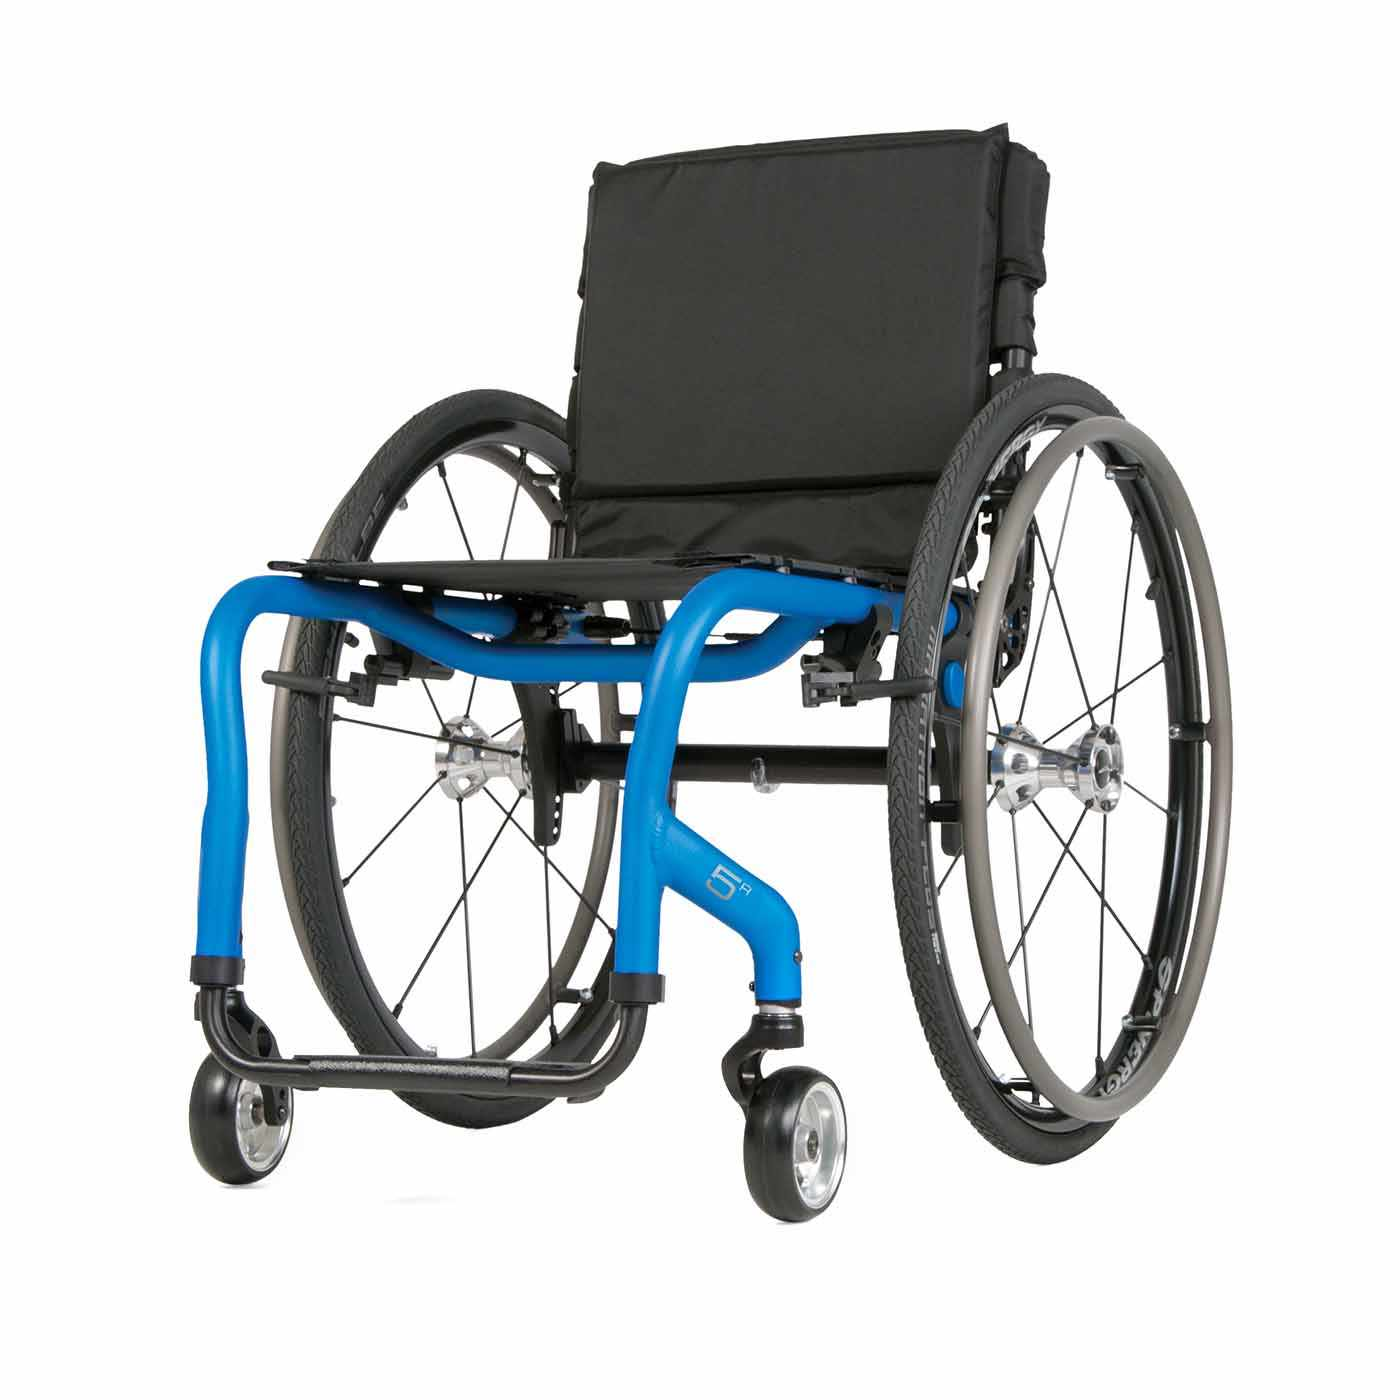 Quickie 5R rigid ultralight wheelchair